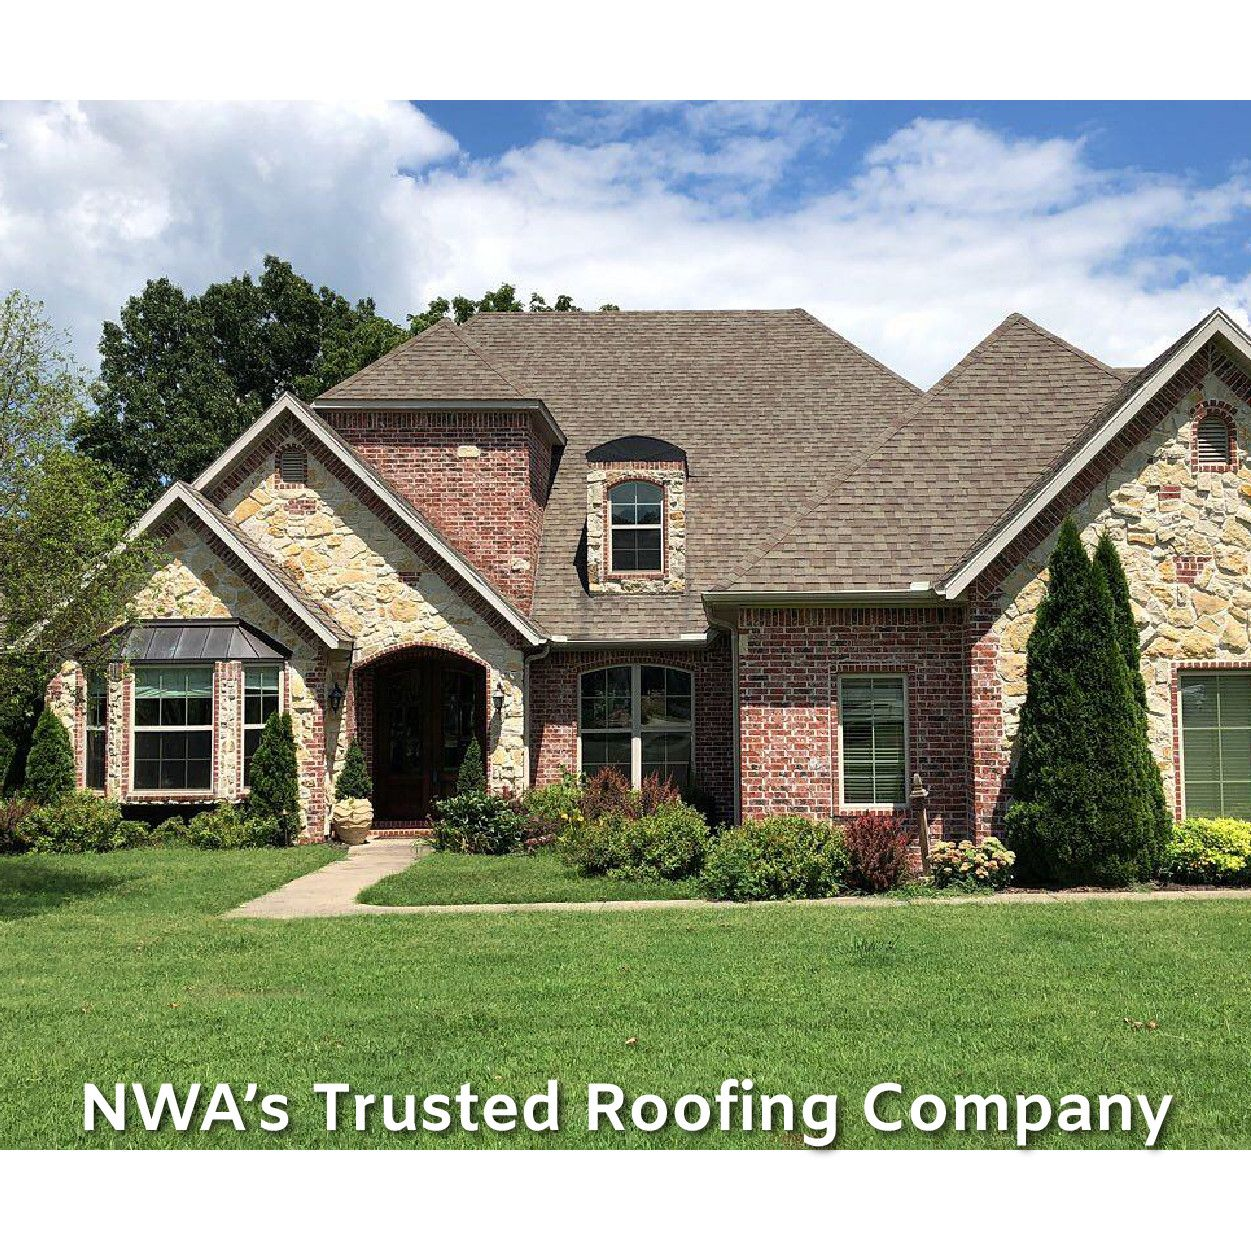 Pinnacle Roofing Is In An Elite Group Of Nationwide Contractors We Have Proven Ourselves To Be A Company That C Roofing Roofing Companies Roofing Contractors